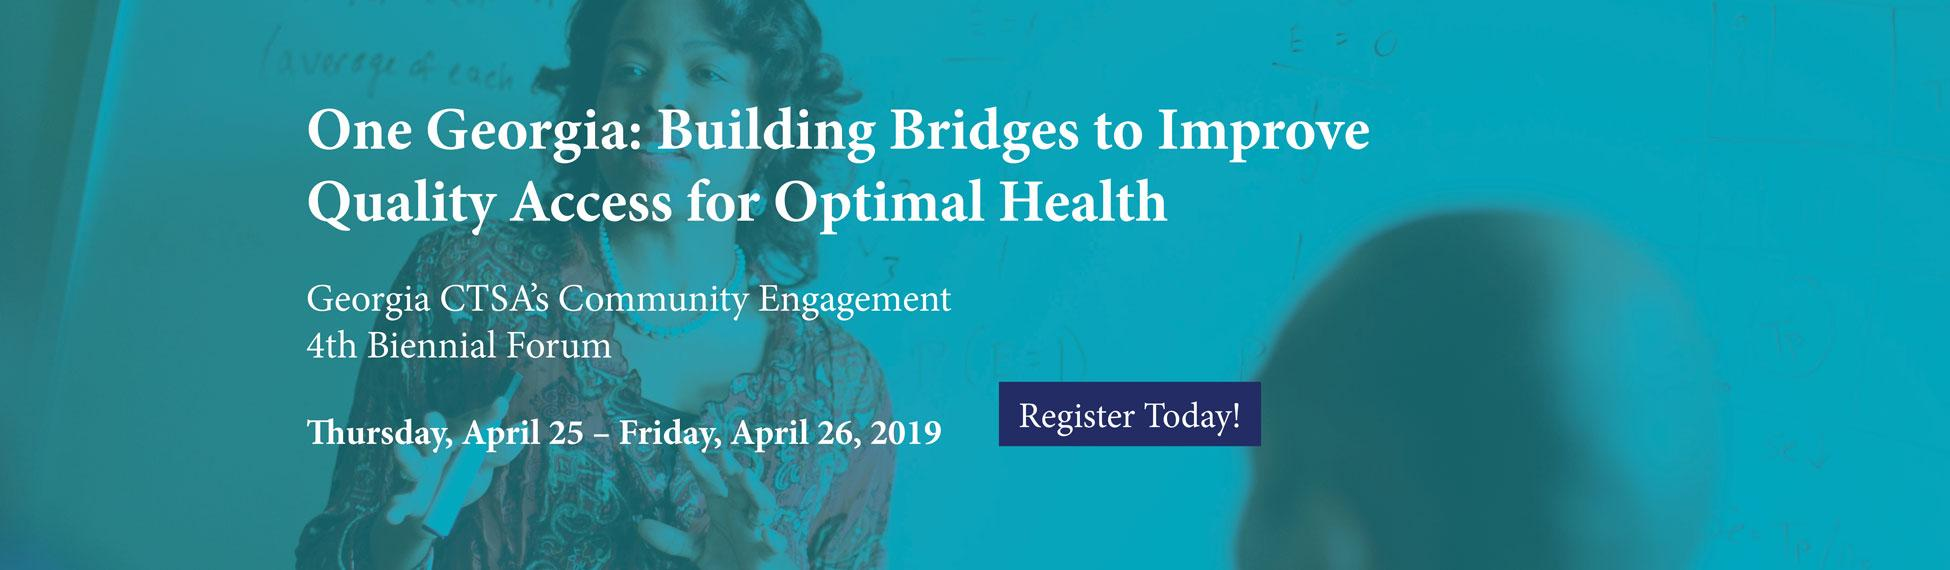 Register for One Georgia: Building Bridges to Improve Quality Access for Optimal Health